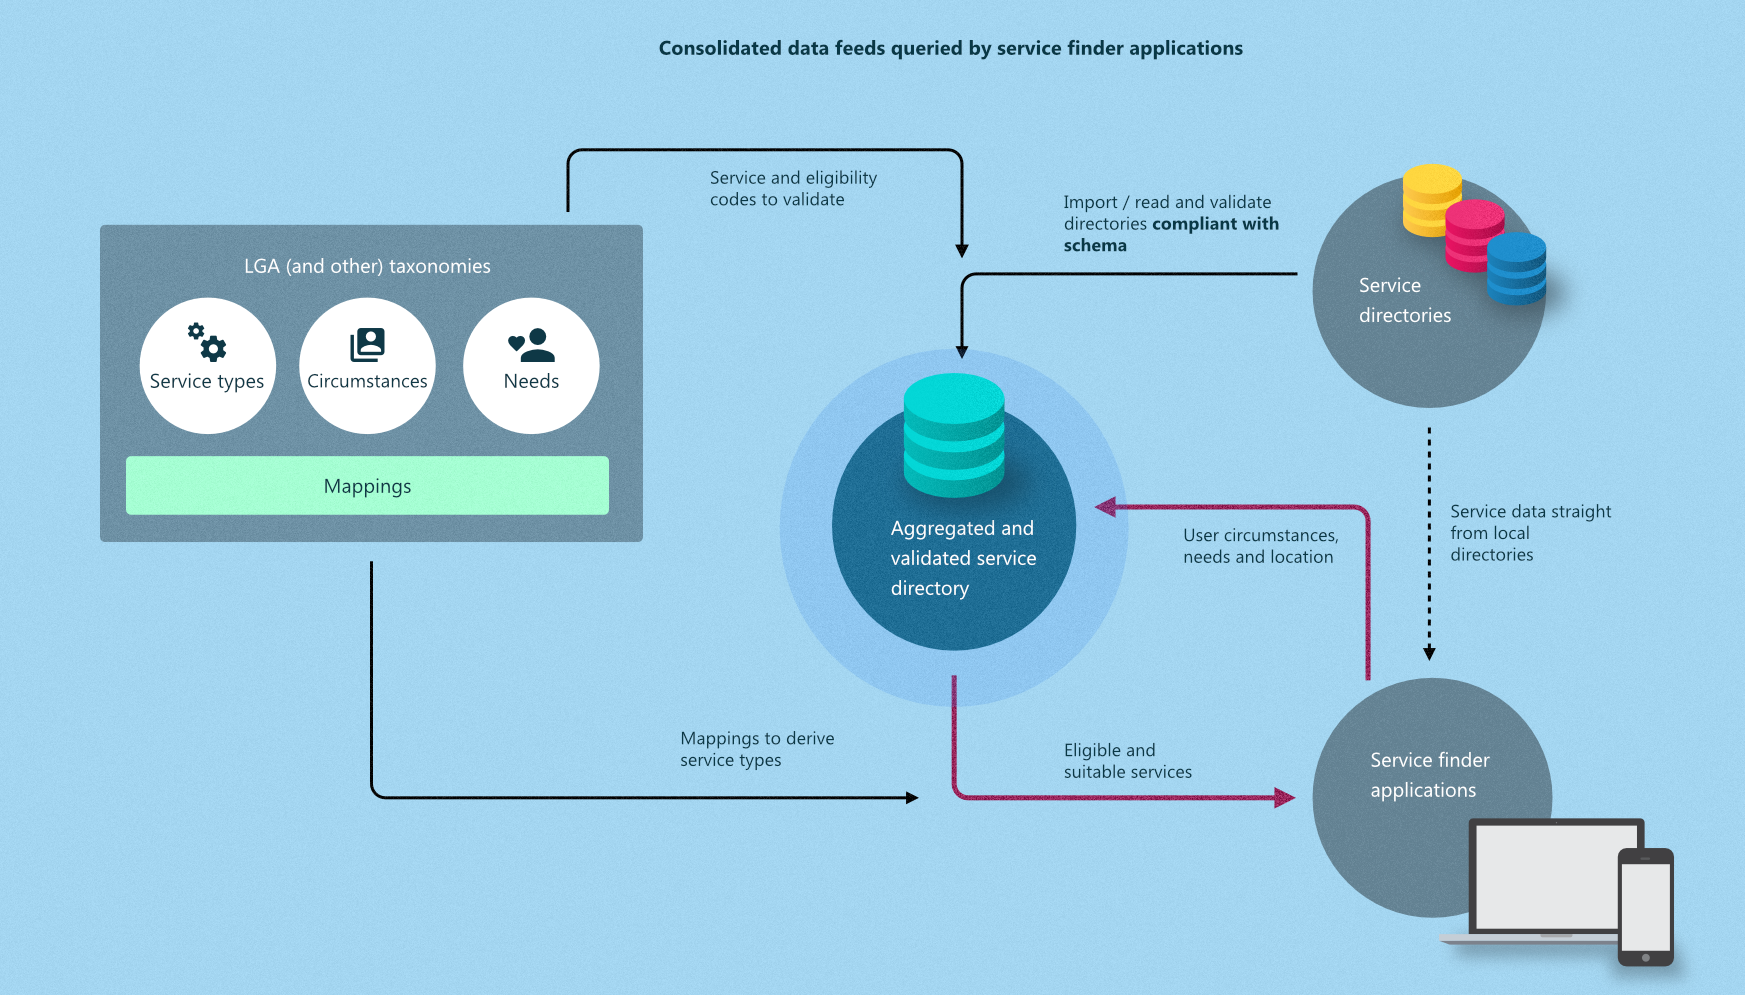 Consolidated data feeds queried by service finder applications